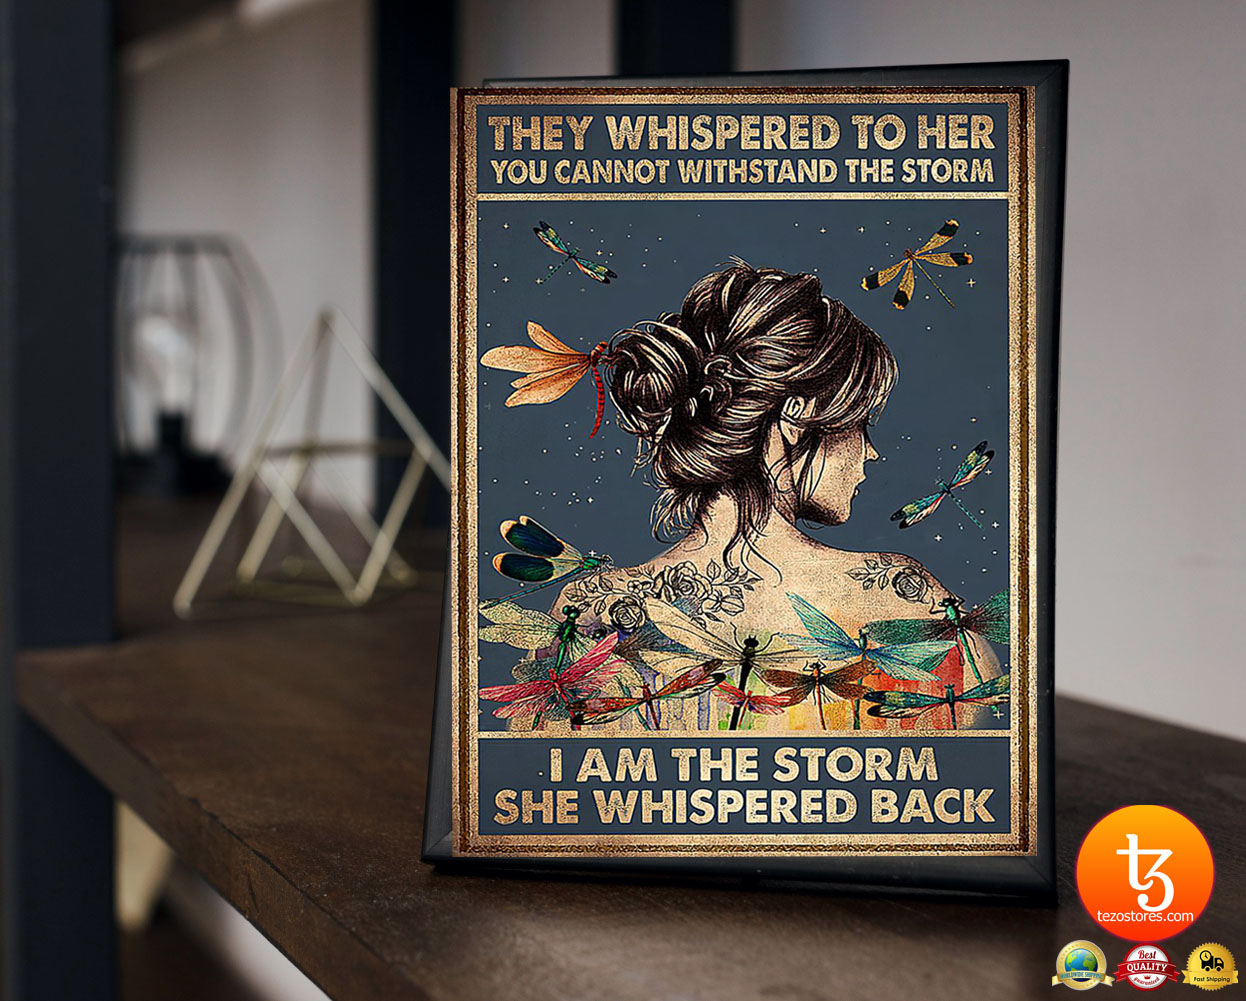 They whispered to her you cannot withstand the storm I am the storm she whispered back poster 21